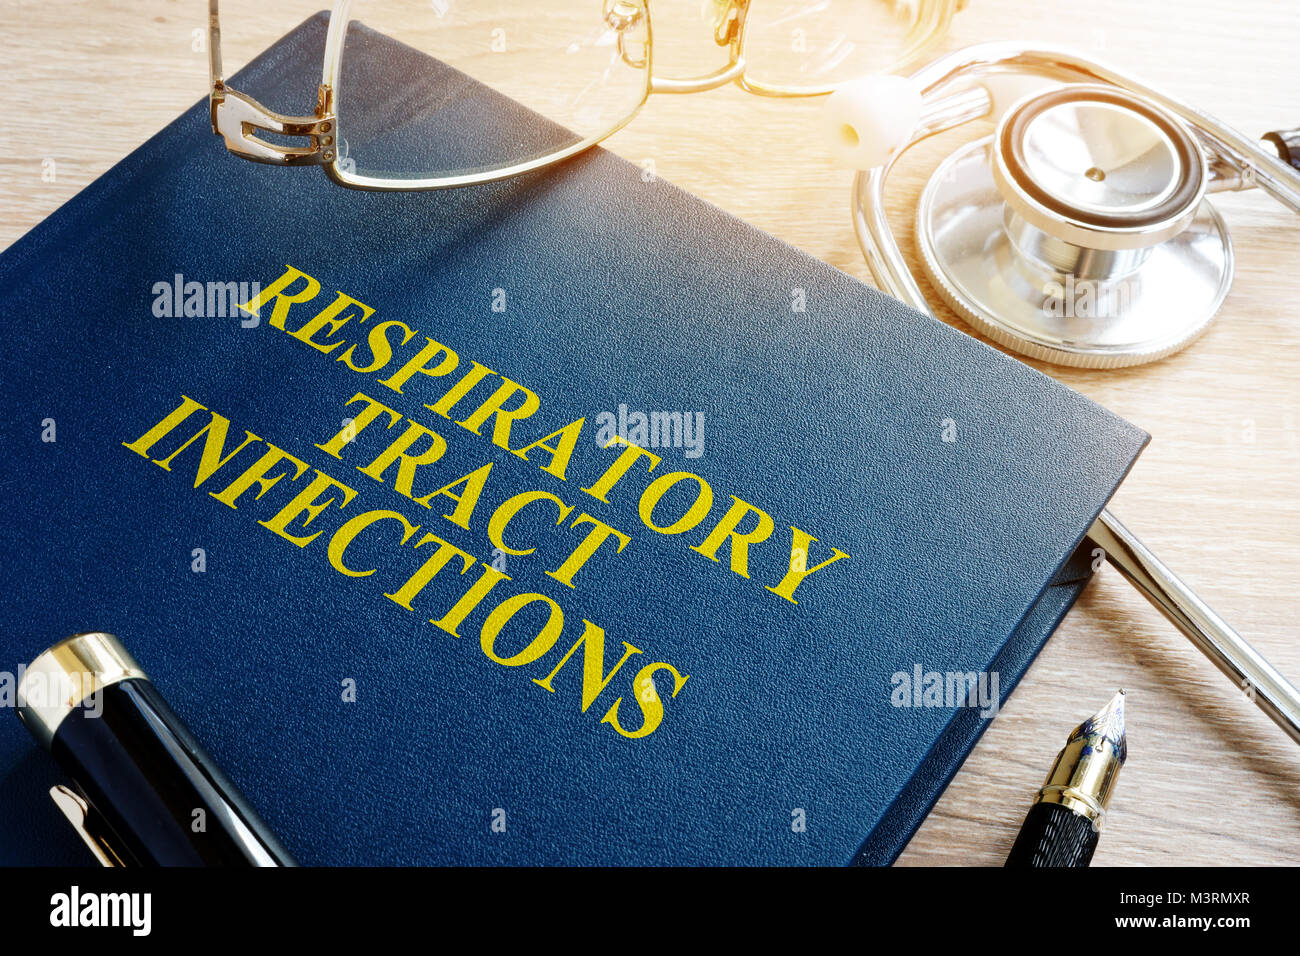 Book about Respiratory tract infections and stethoscope. - Stock Image